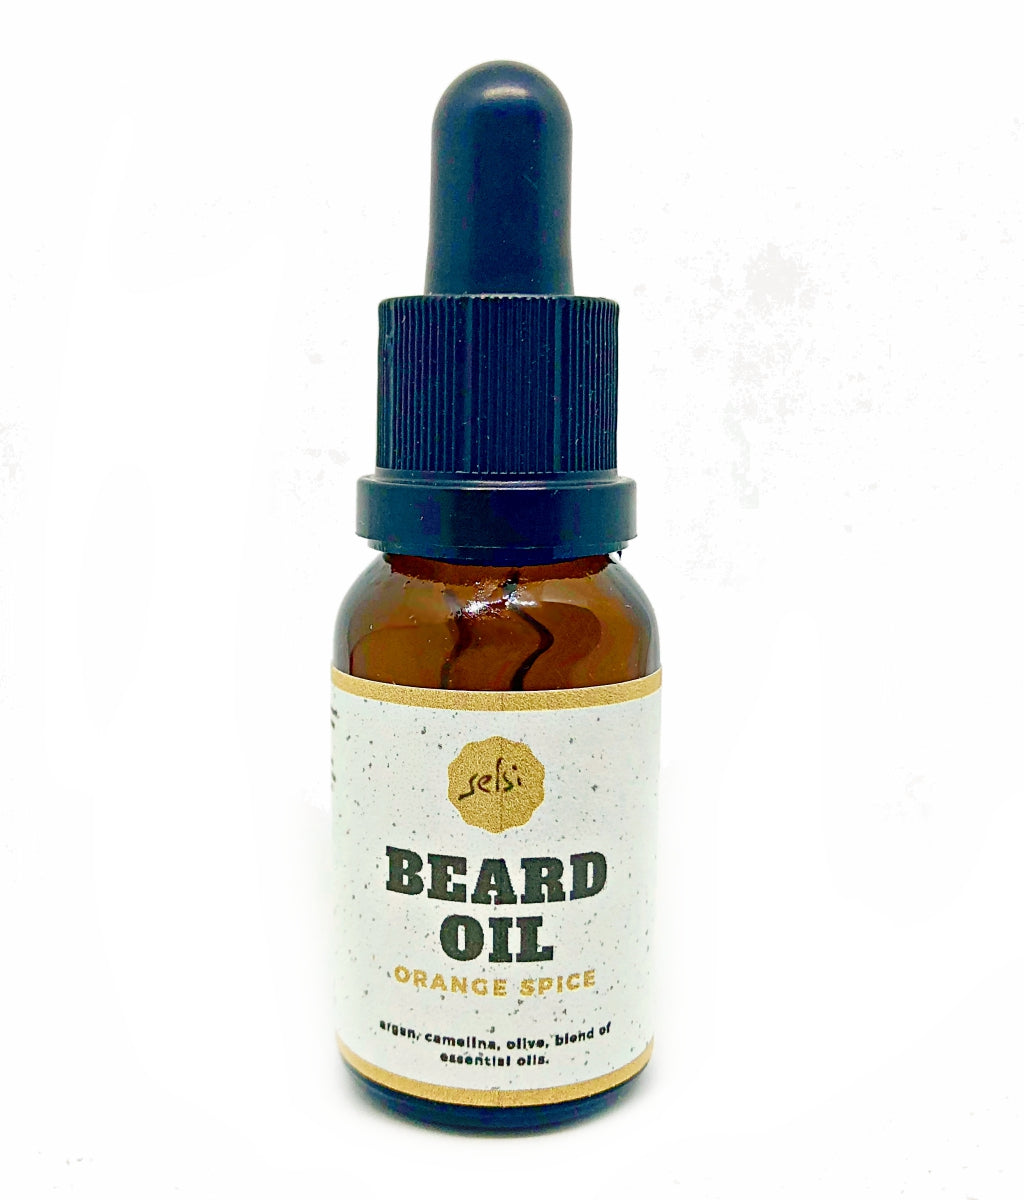 Hand made natural beard oil, lightly scented with orange and spice essential oils. Made by Selsi in Toronto.